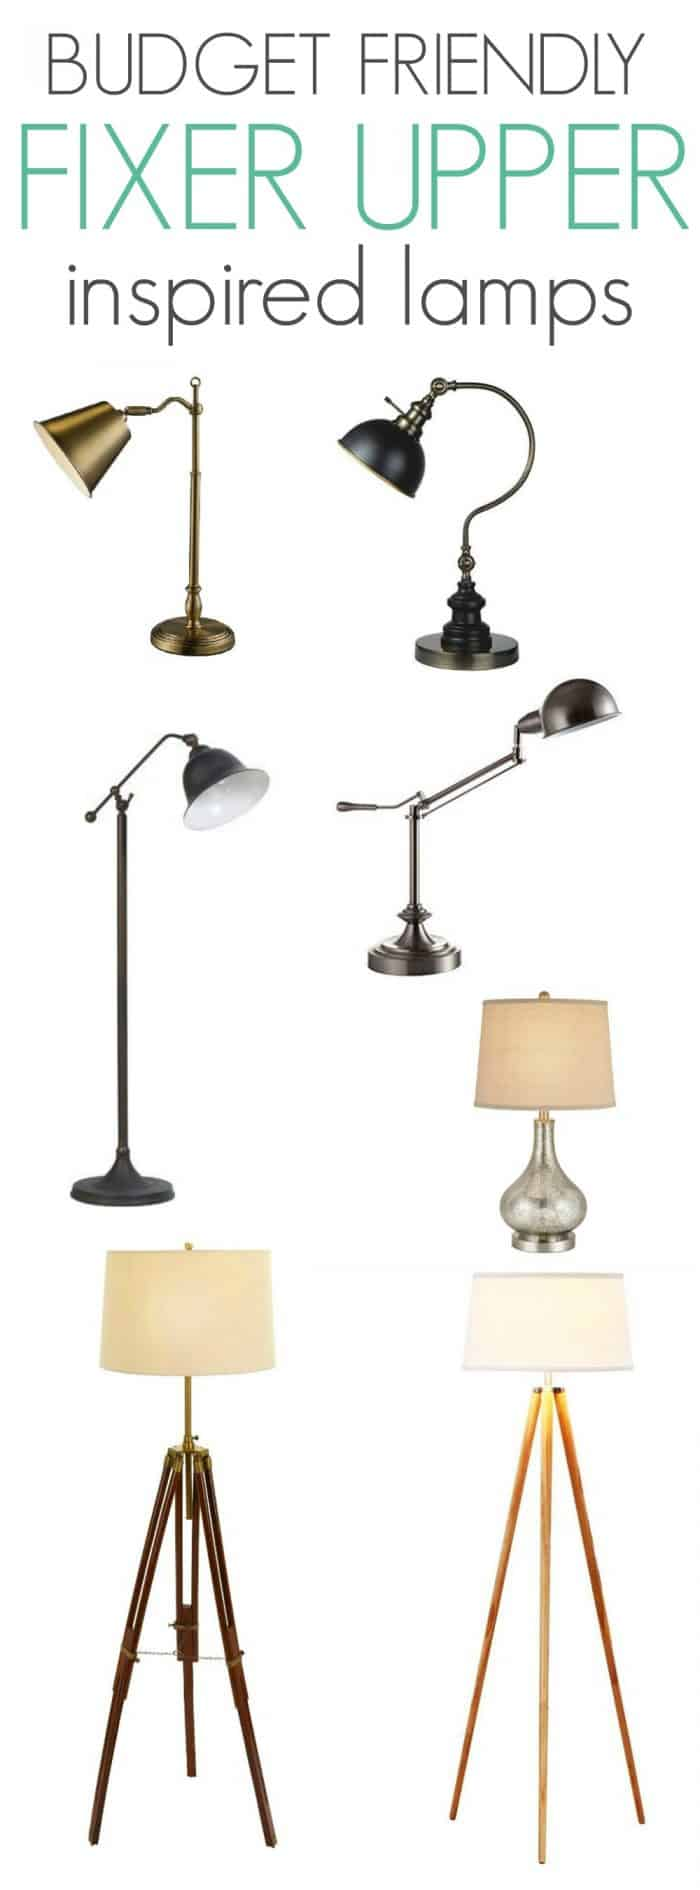 Budget Friendly Fixer Upper Inspired Lamps